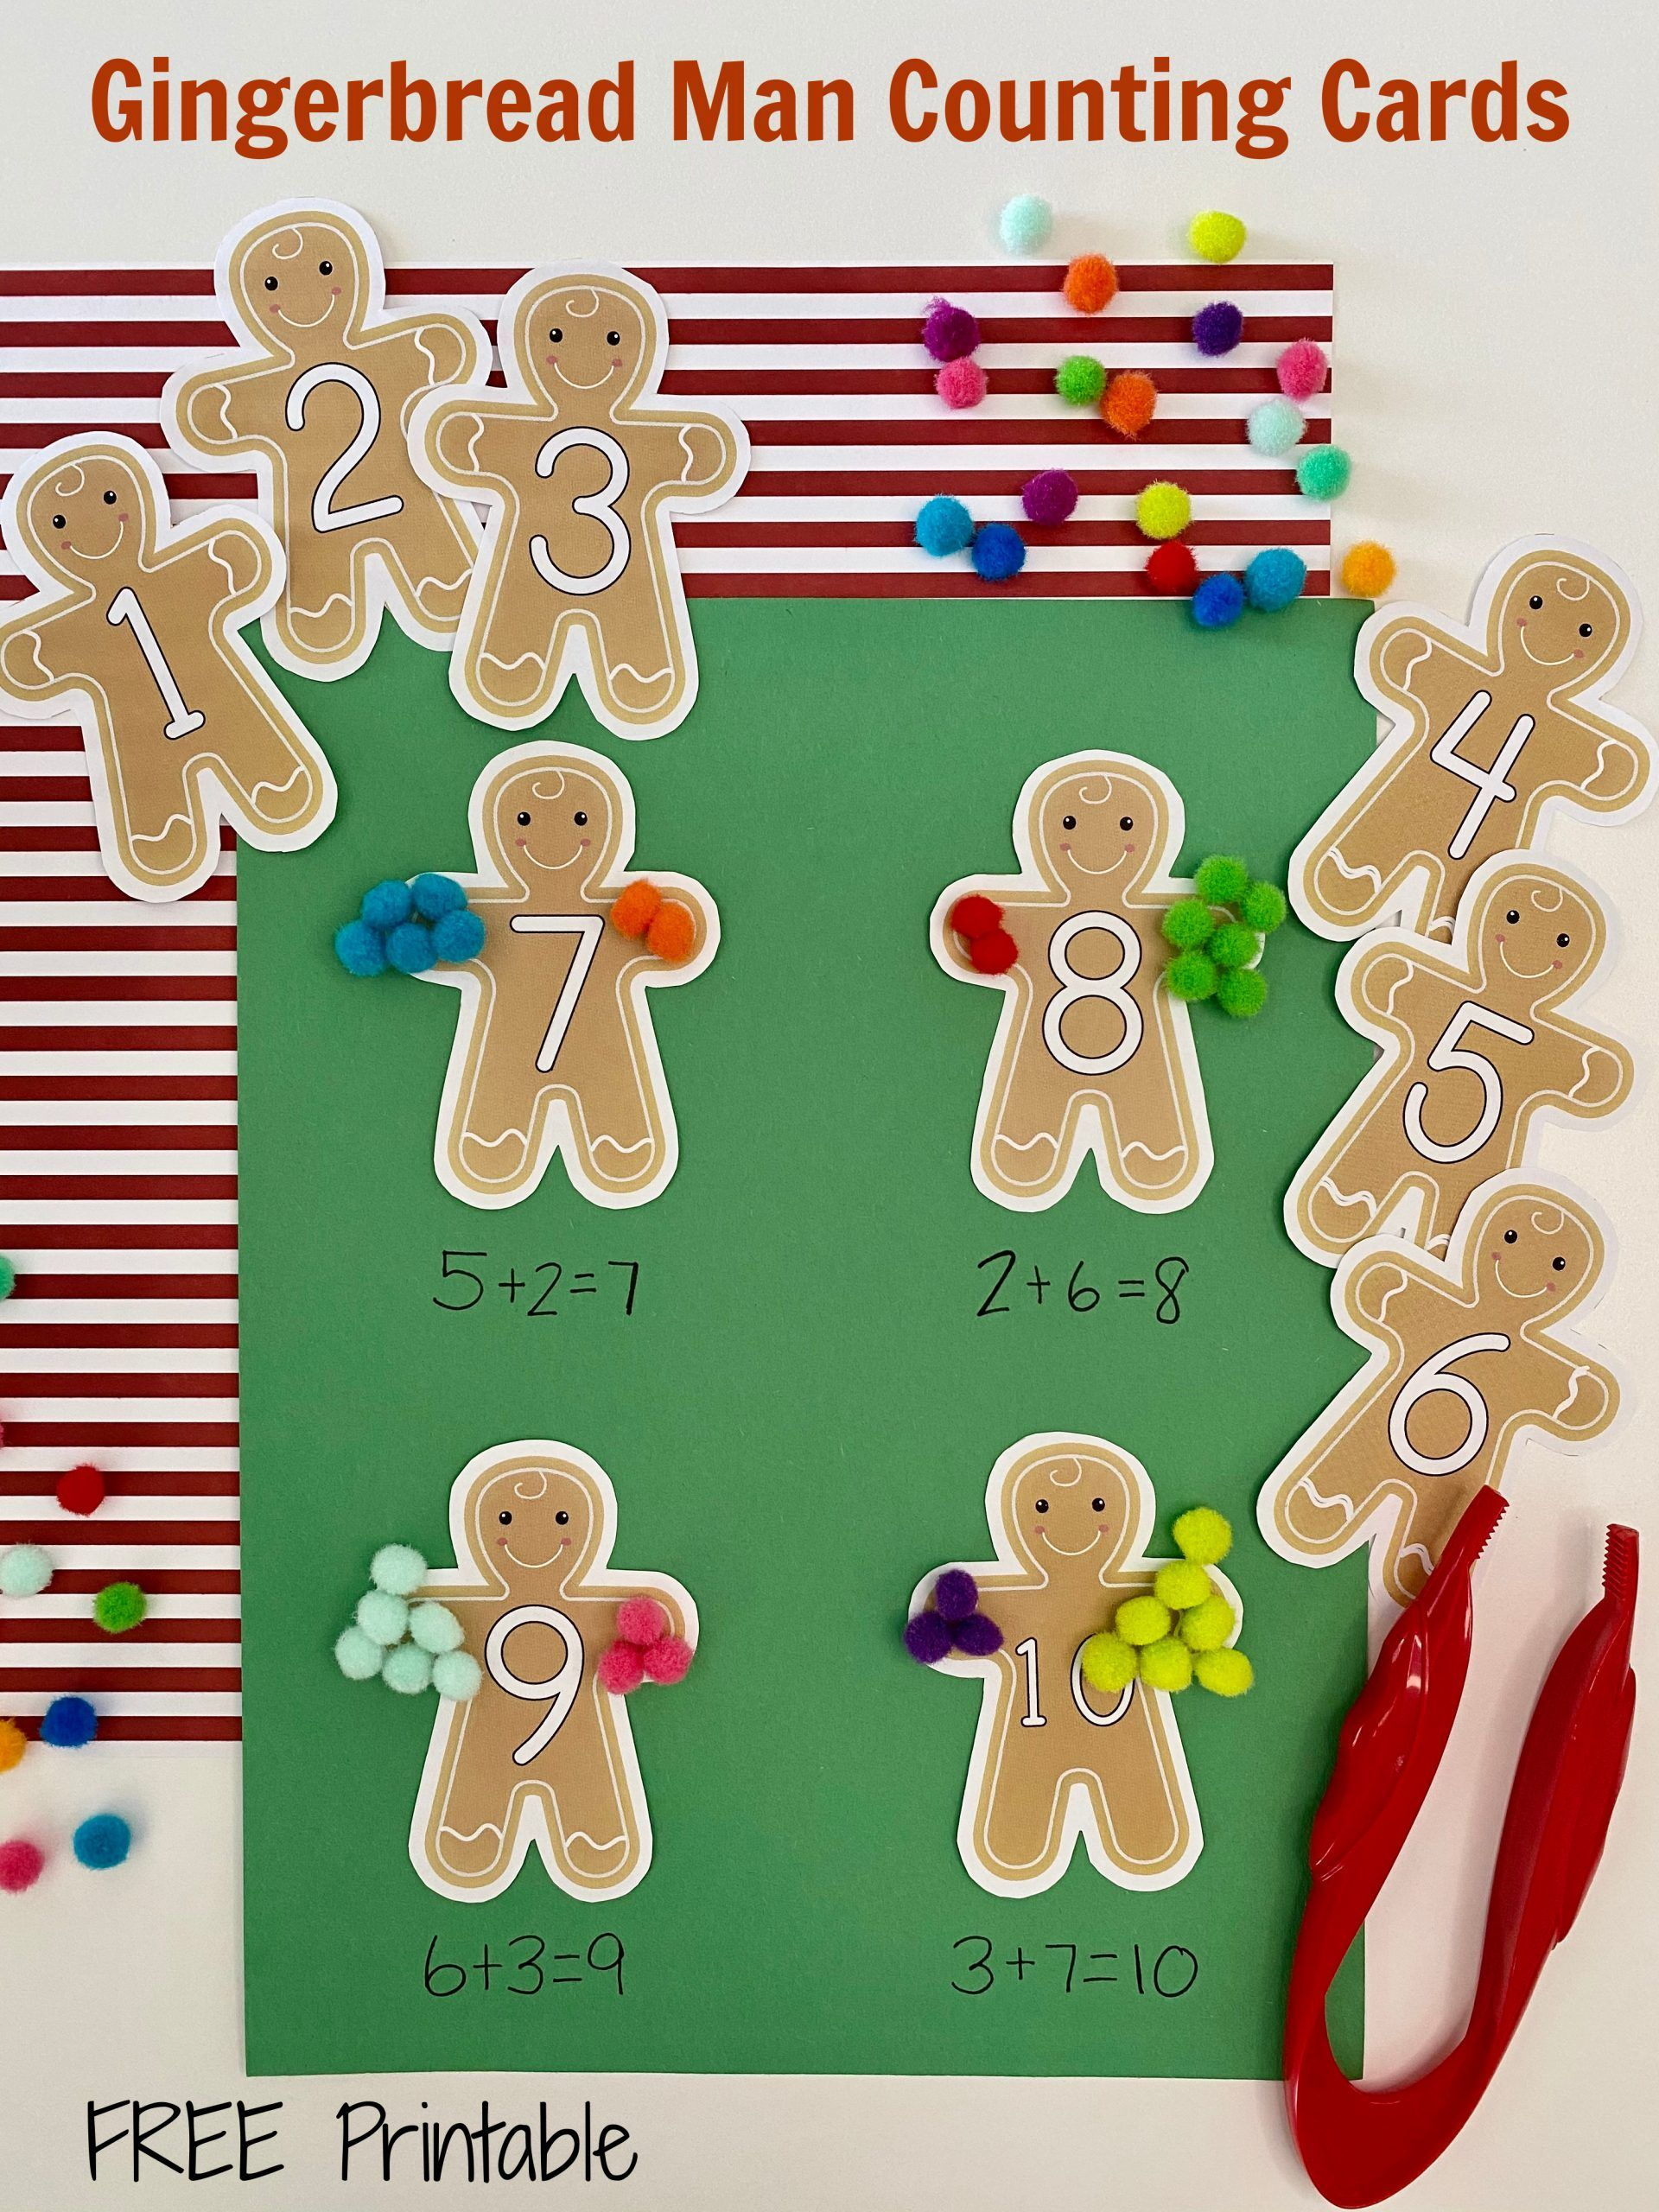 Gingerbread Man Counting Cards The Activity Mom Counting Cards Gingerbread Activities Gingerbread Math Activities [ 2560 x 1920 Pixel ]